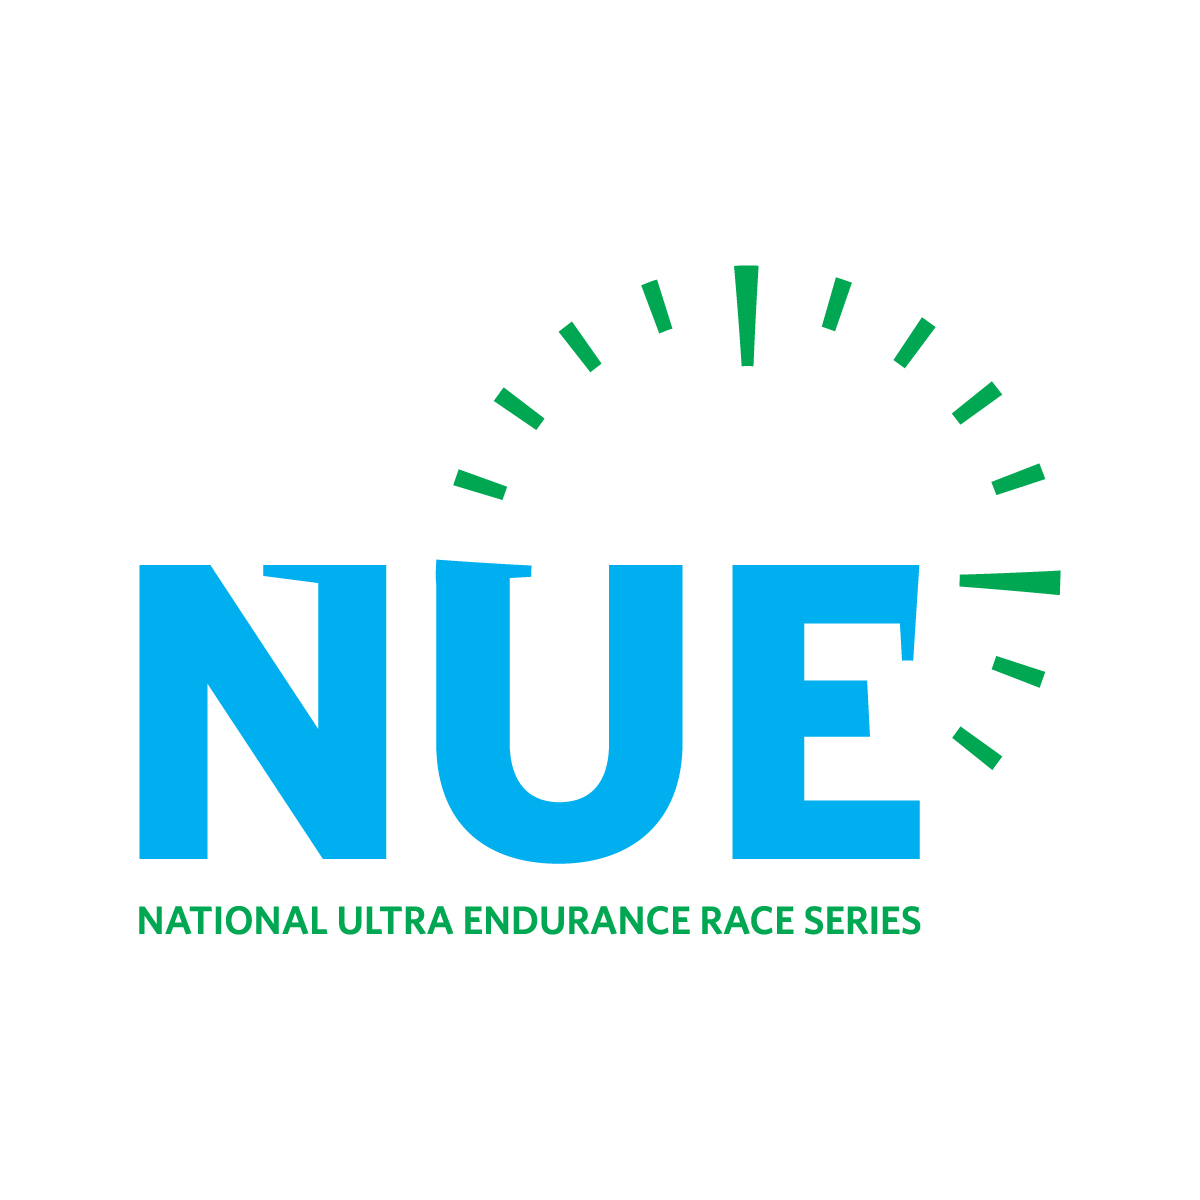 A NATIONAL ULTRA-ENDURANCE SERIES EVENT